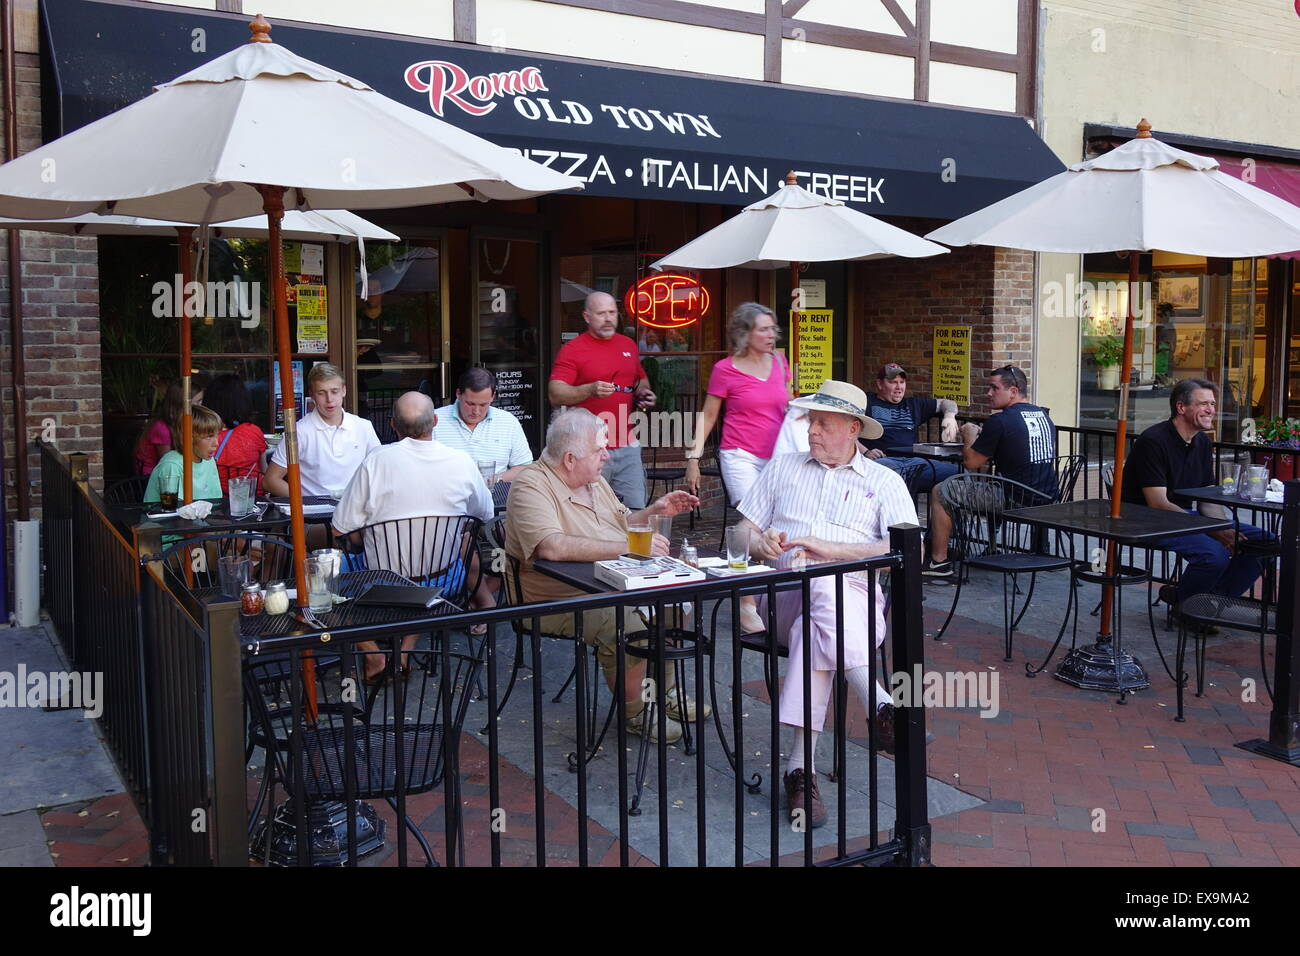 Diners gathered at Roma Old Town restaurant at the Old Town pedestrian mall, Winchester, Virginia - Stock Image